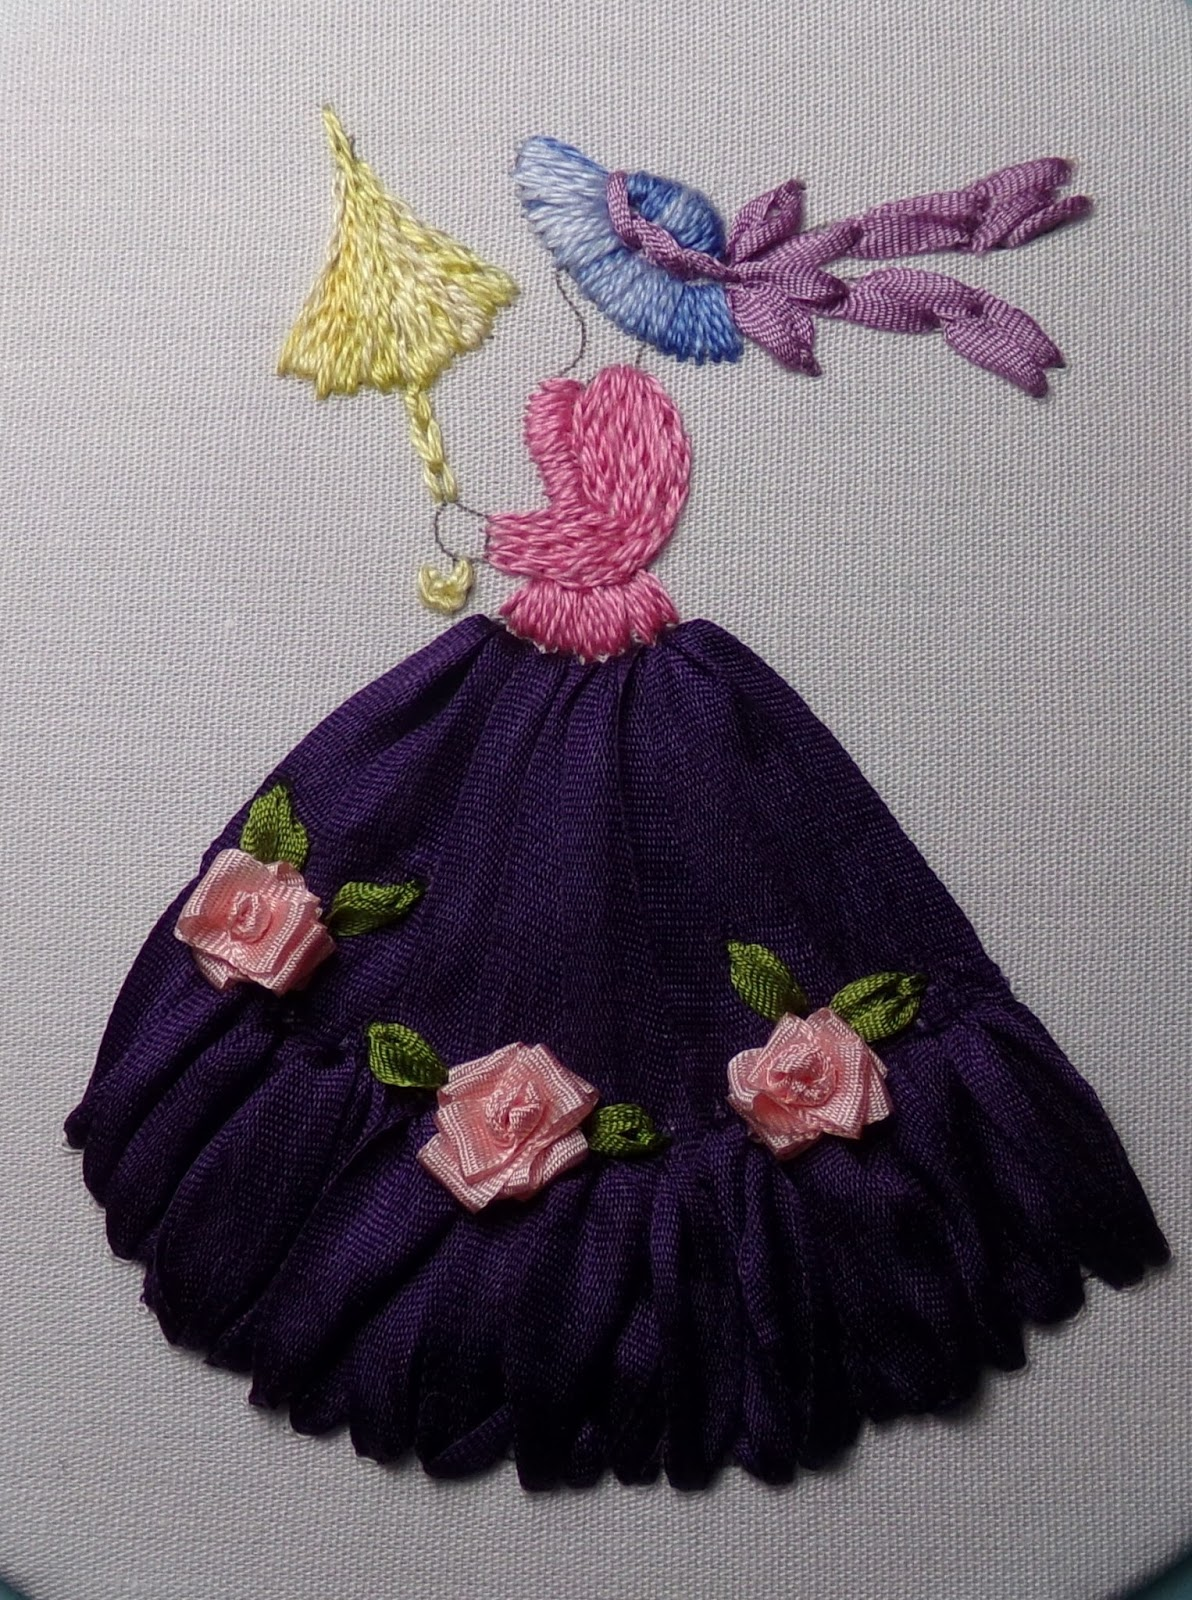 Shawkl Open Registration Icqc 105 Silk Ribbon Embroidery And More